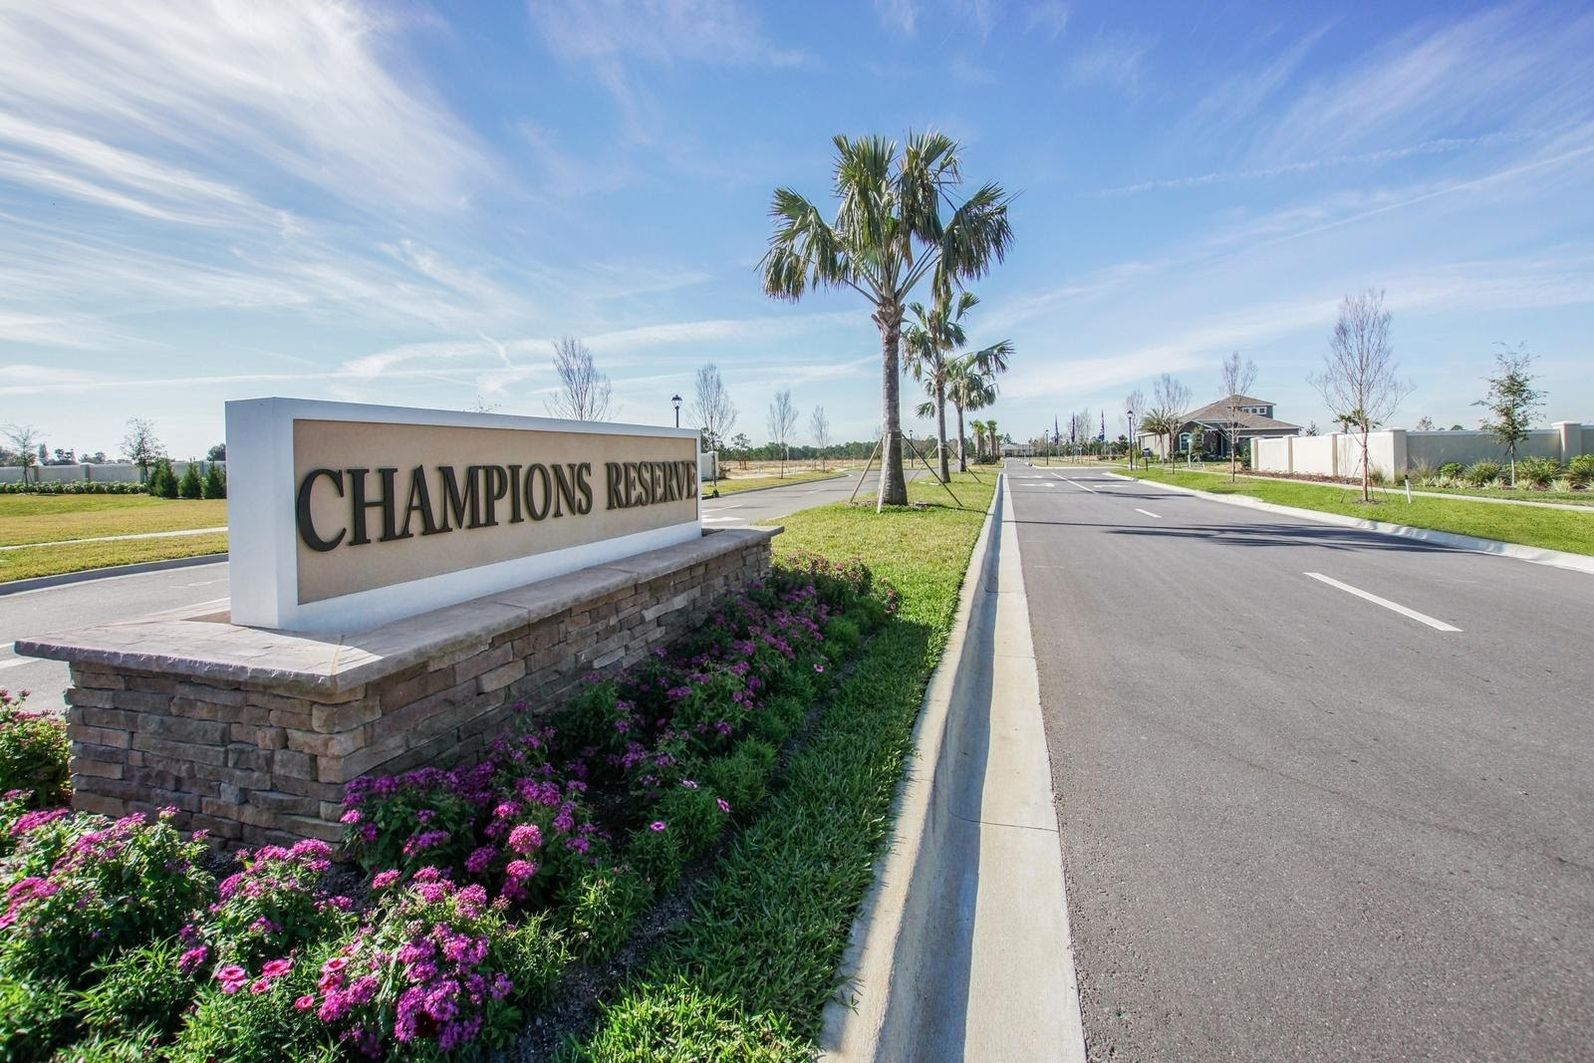 Photo of Champions Reserve in Davenport, FL 33896